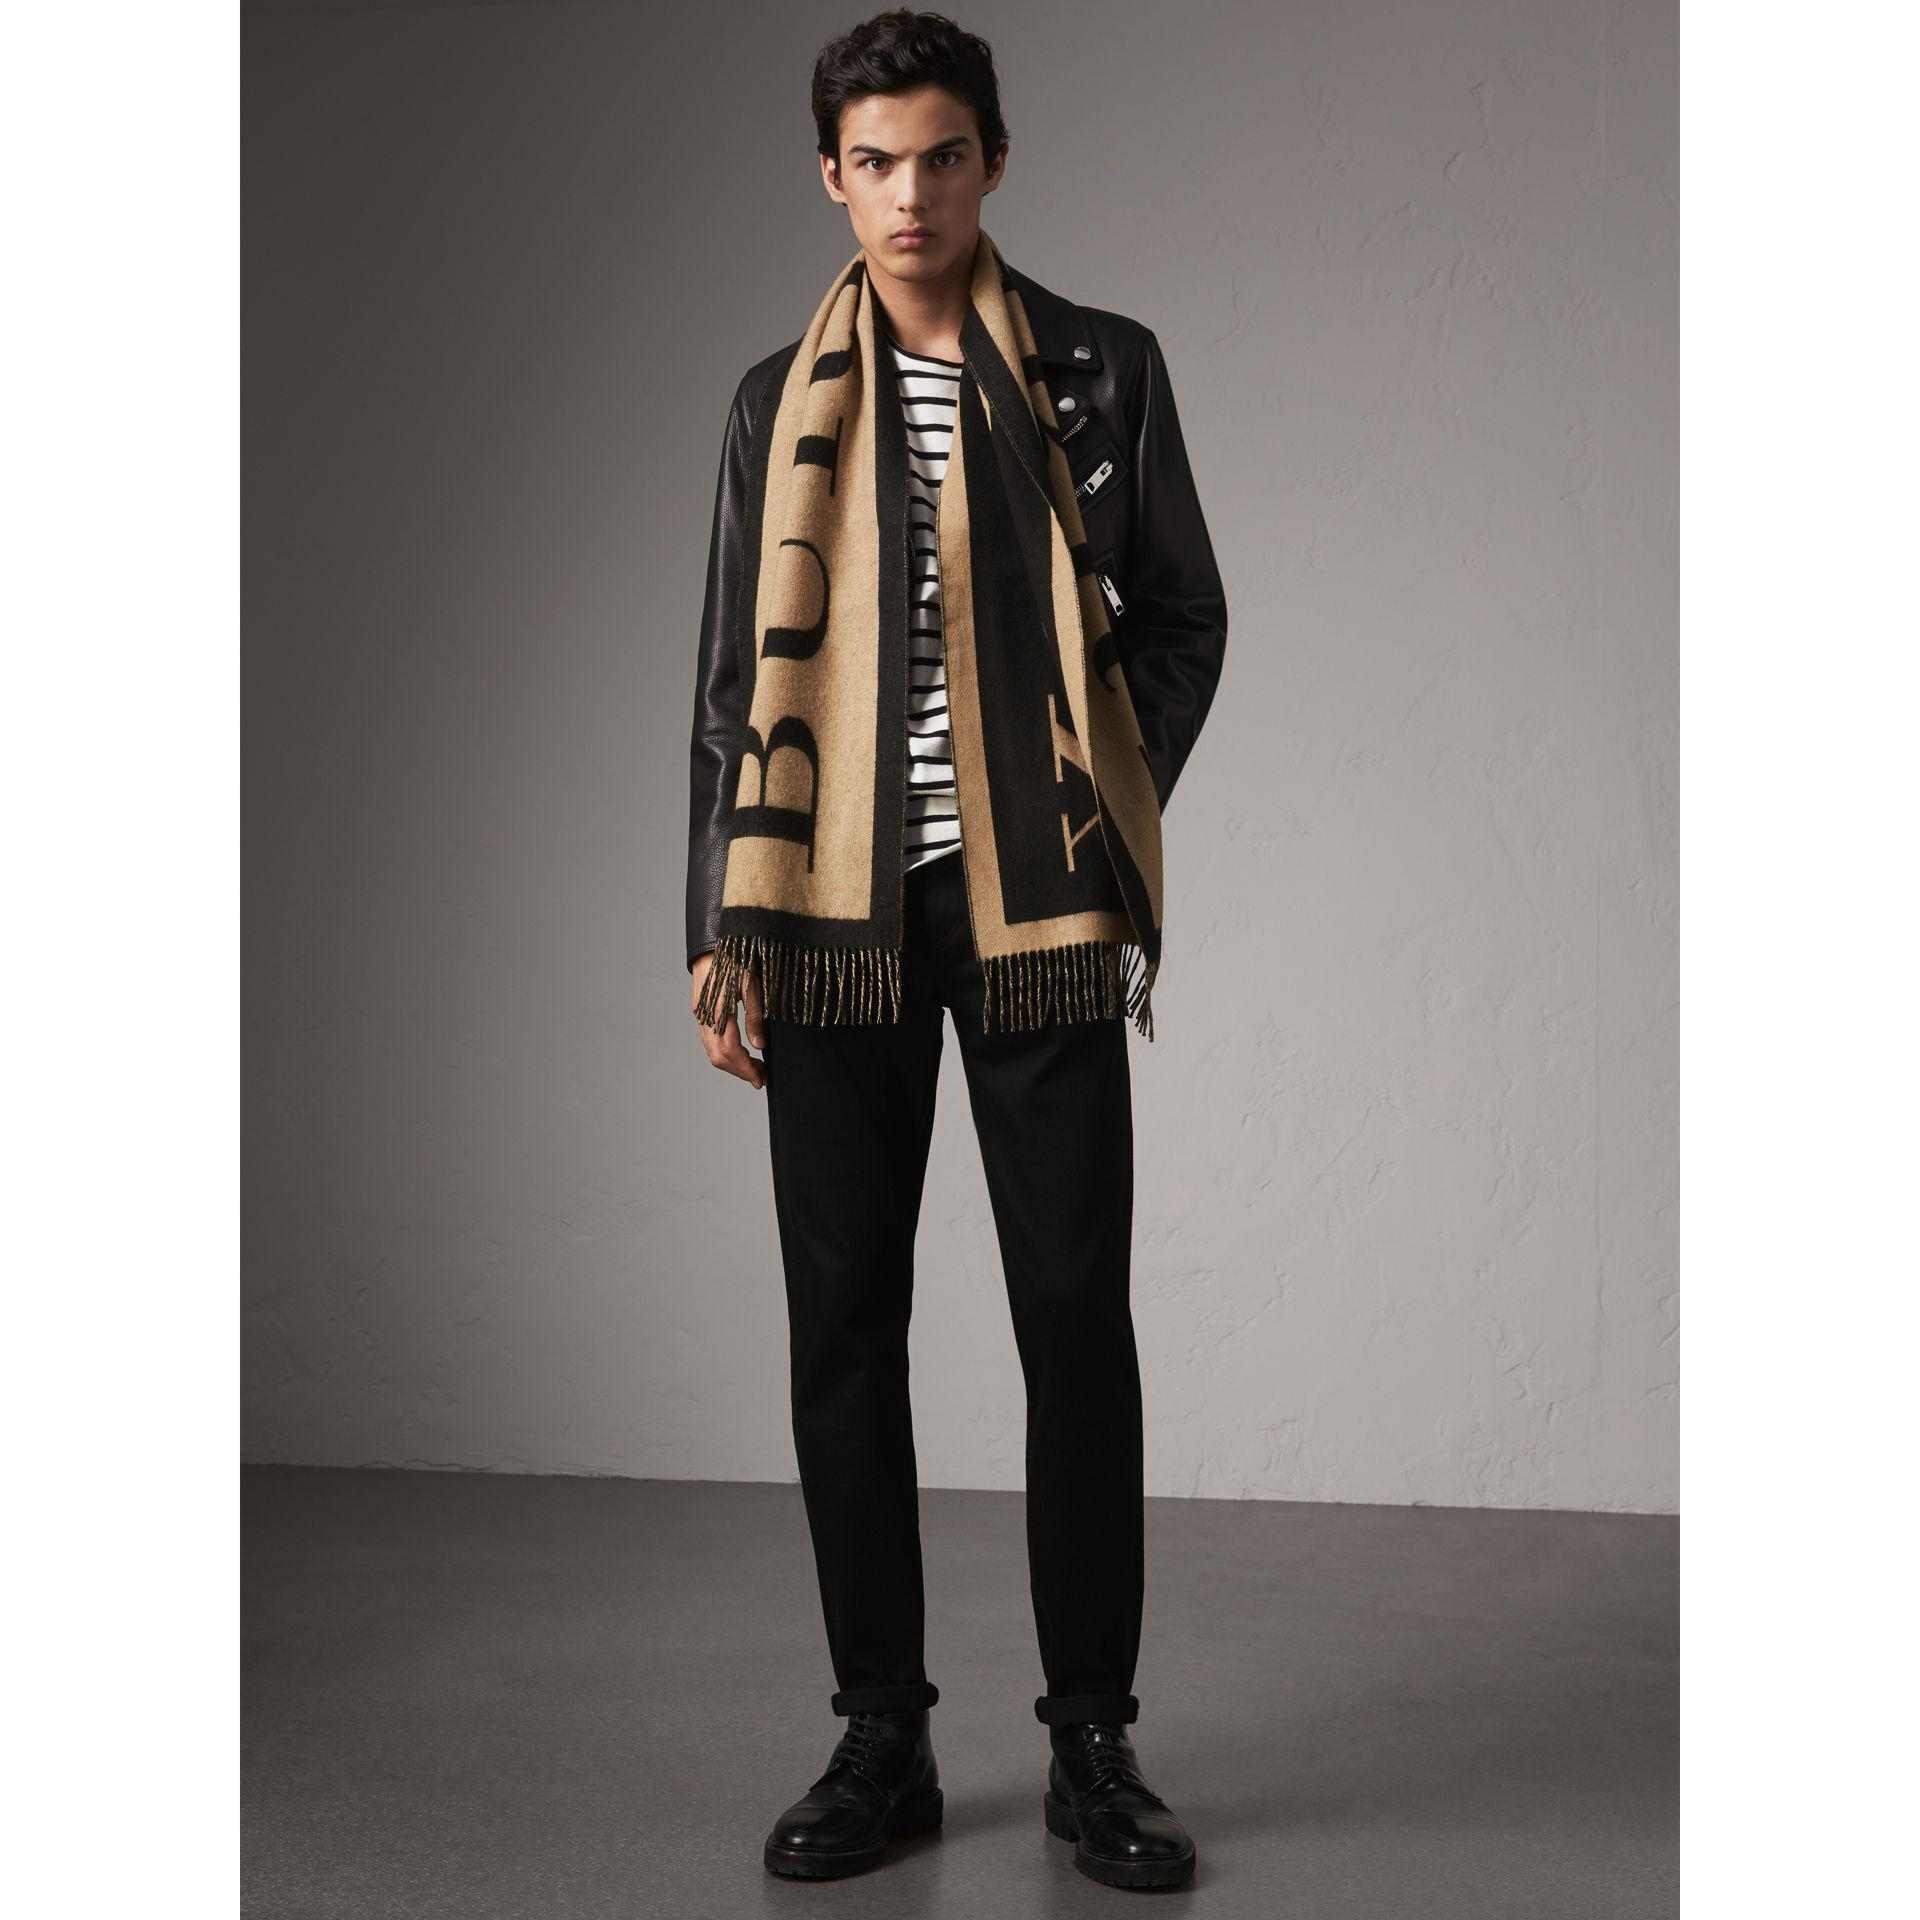 Burberry Scarf For Men On Sale Online Shopping For Women Men Kids Fashion Lifestyle Free Delivery Returns